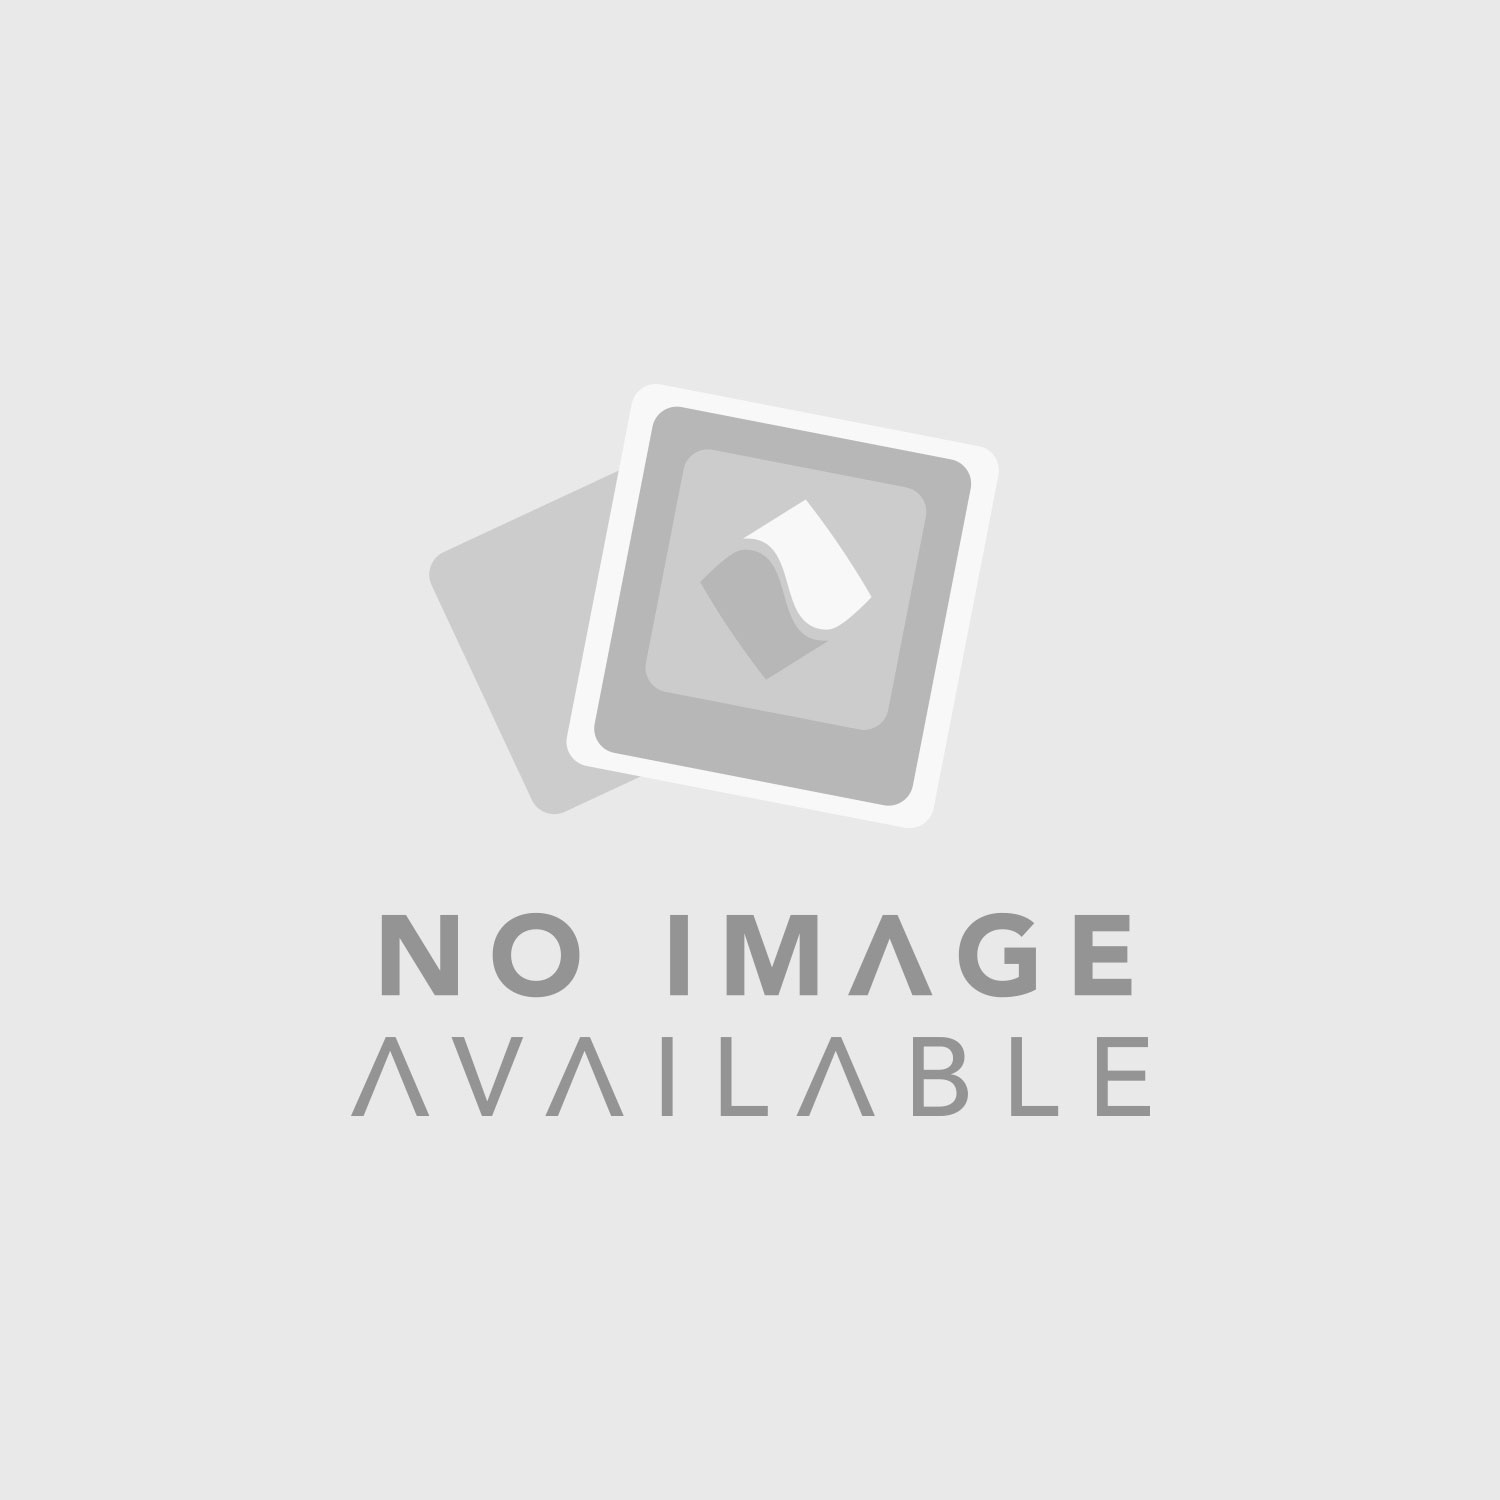 Ushio 1000087 BTR Replacement Lamp Bulb (1000W / 120V)